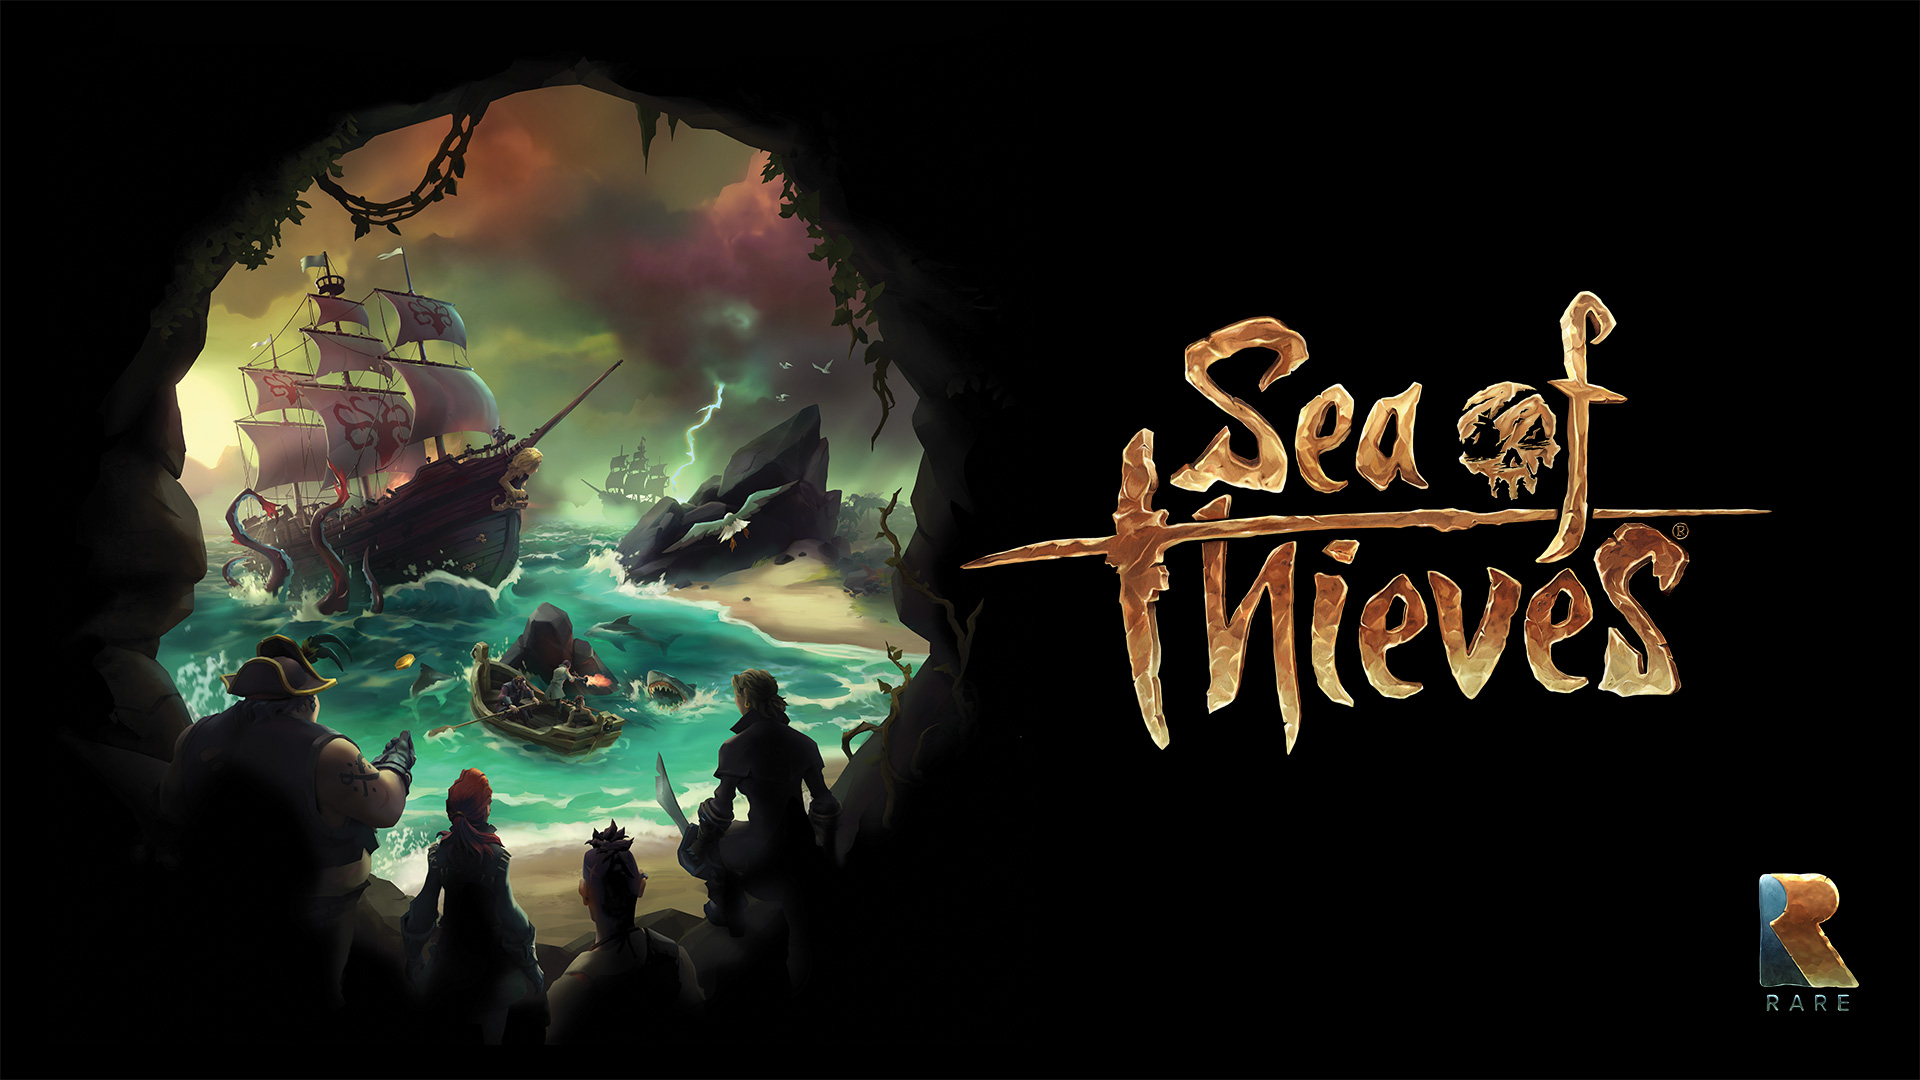 More Sea of Thieves Xbox One Accessories Are on the